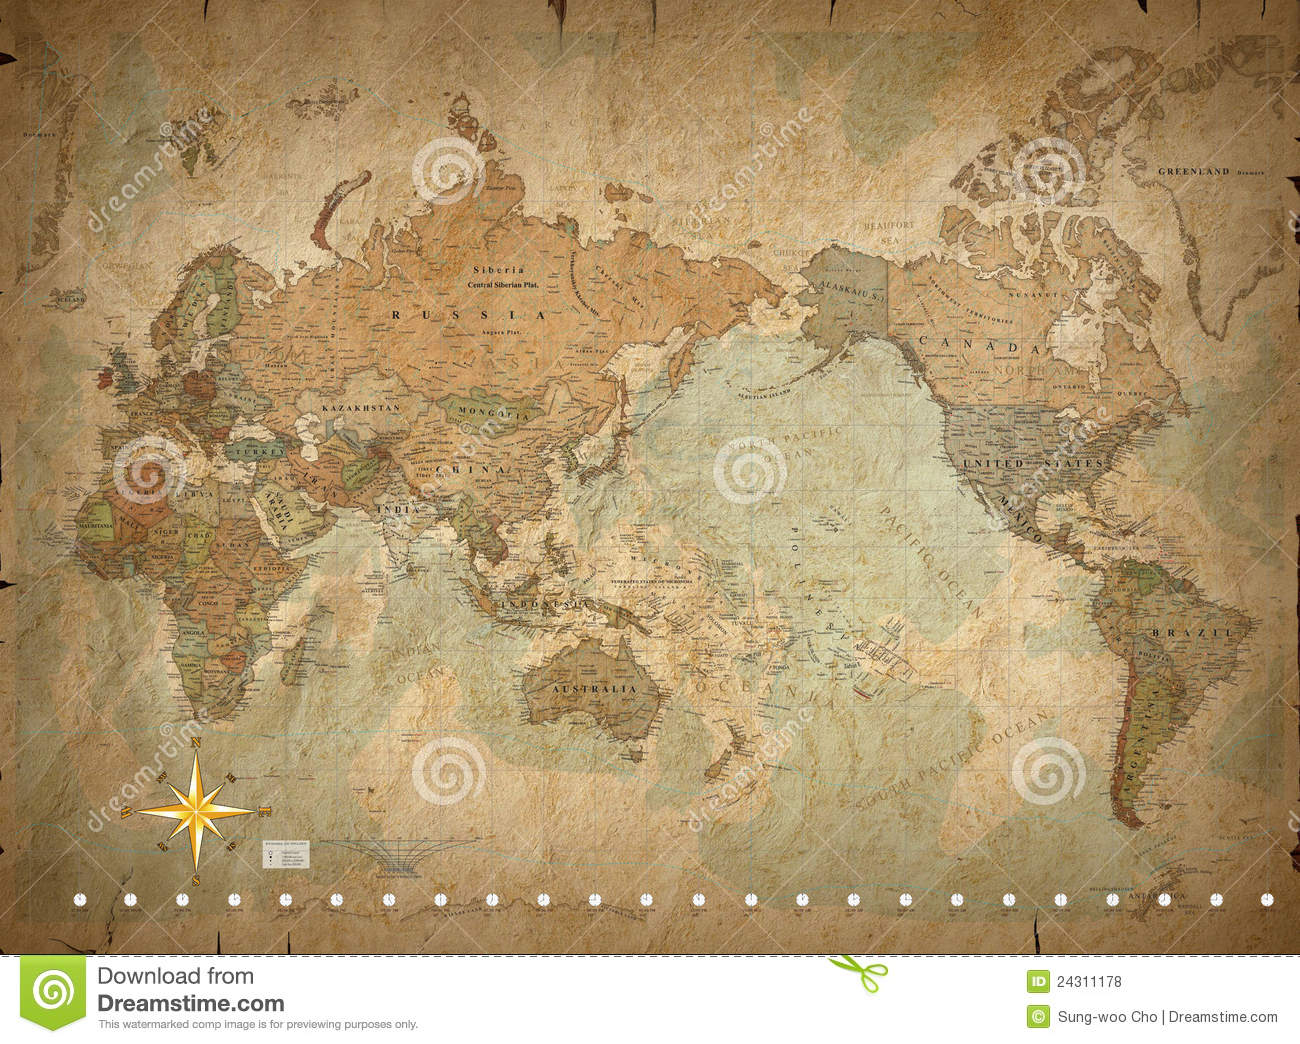 Antique world map stock photo image of global background 24311178 antique world map royalty free stock photo gumiabroncs Images